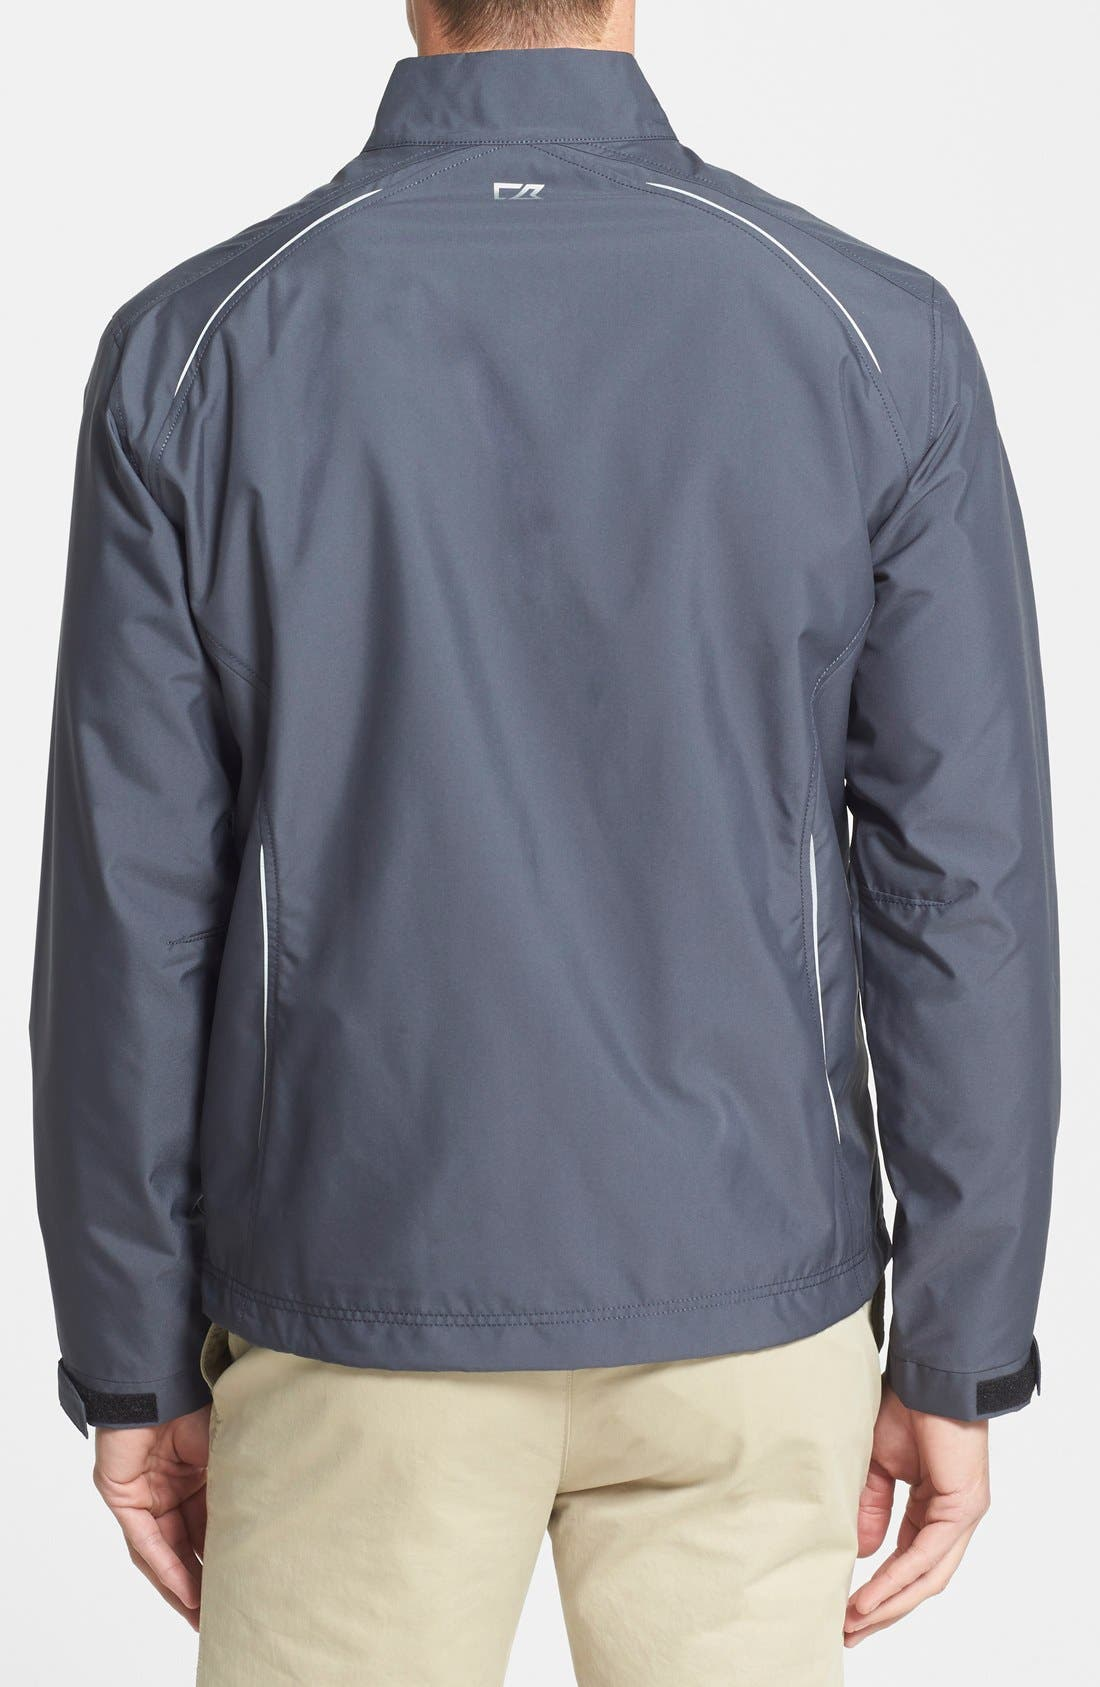 Beacon WeatherTec Wind & Water Resistant Jacket,                             Alternate thumbnail 5, color,                             ONYX GREY